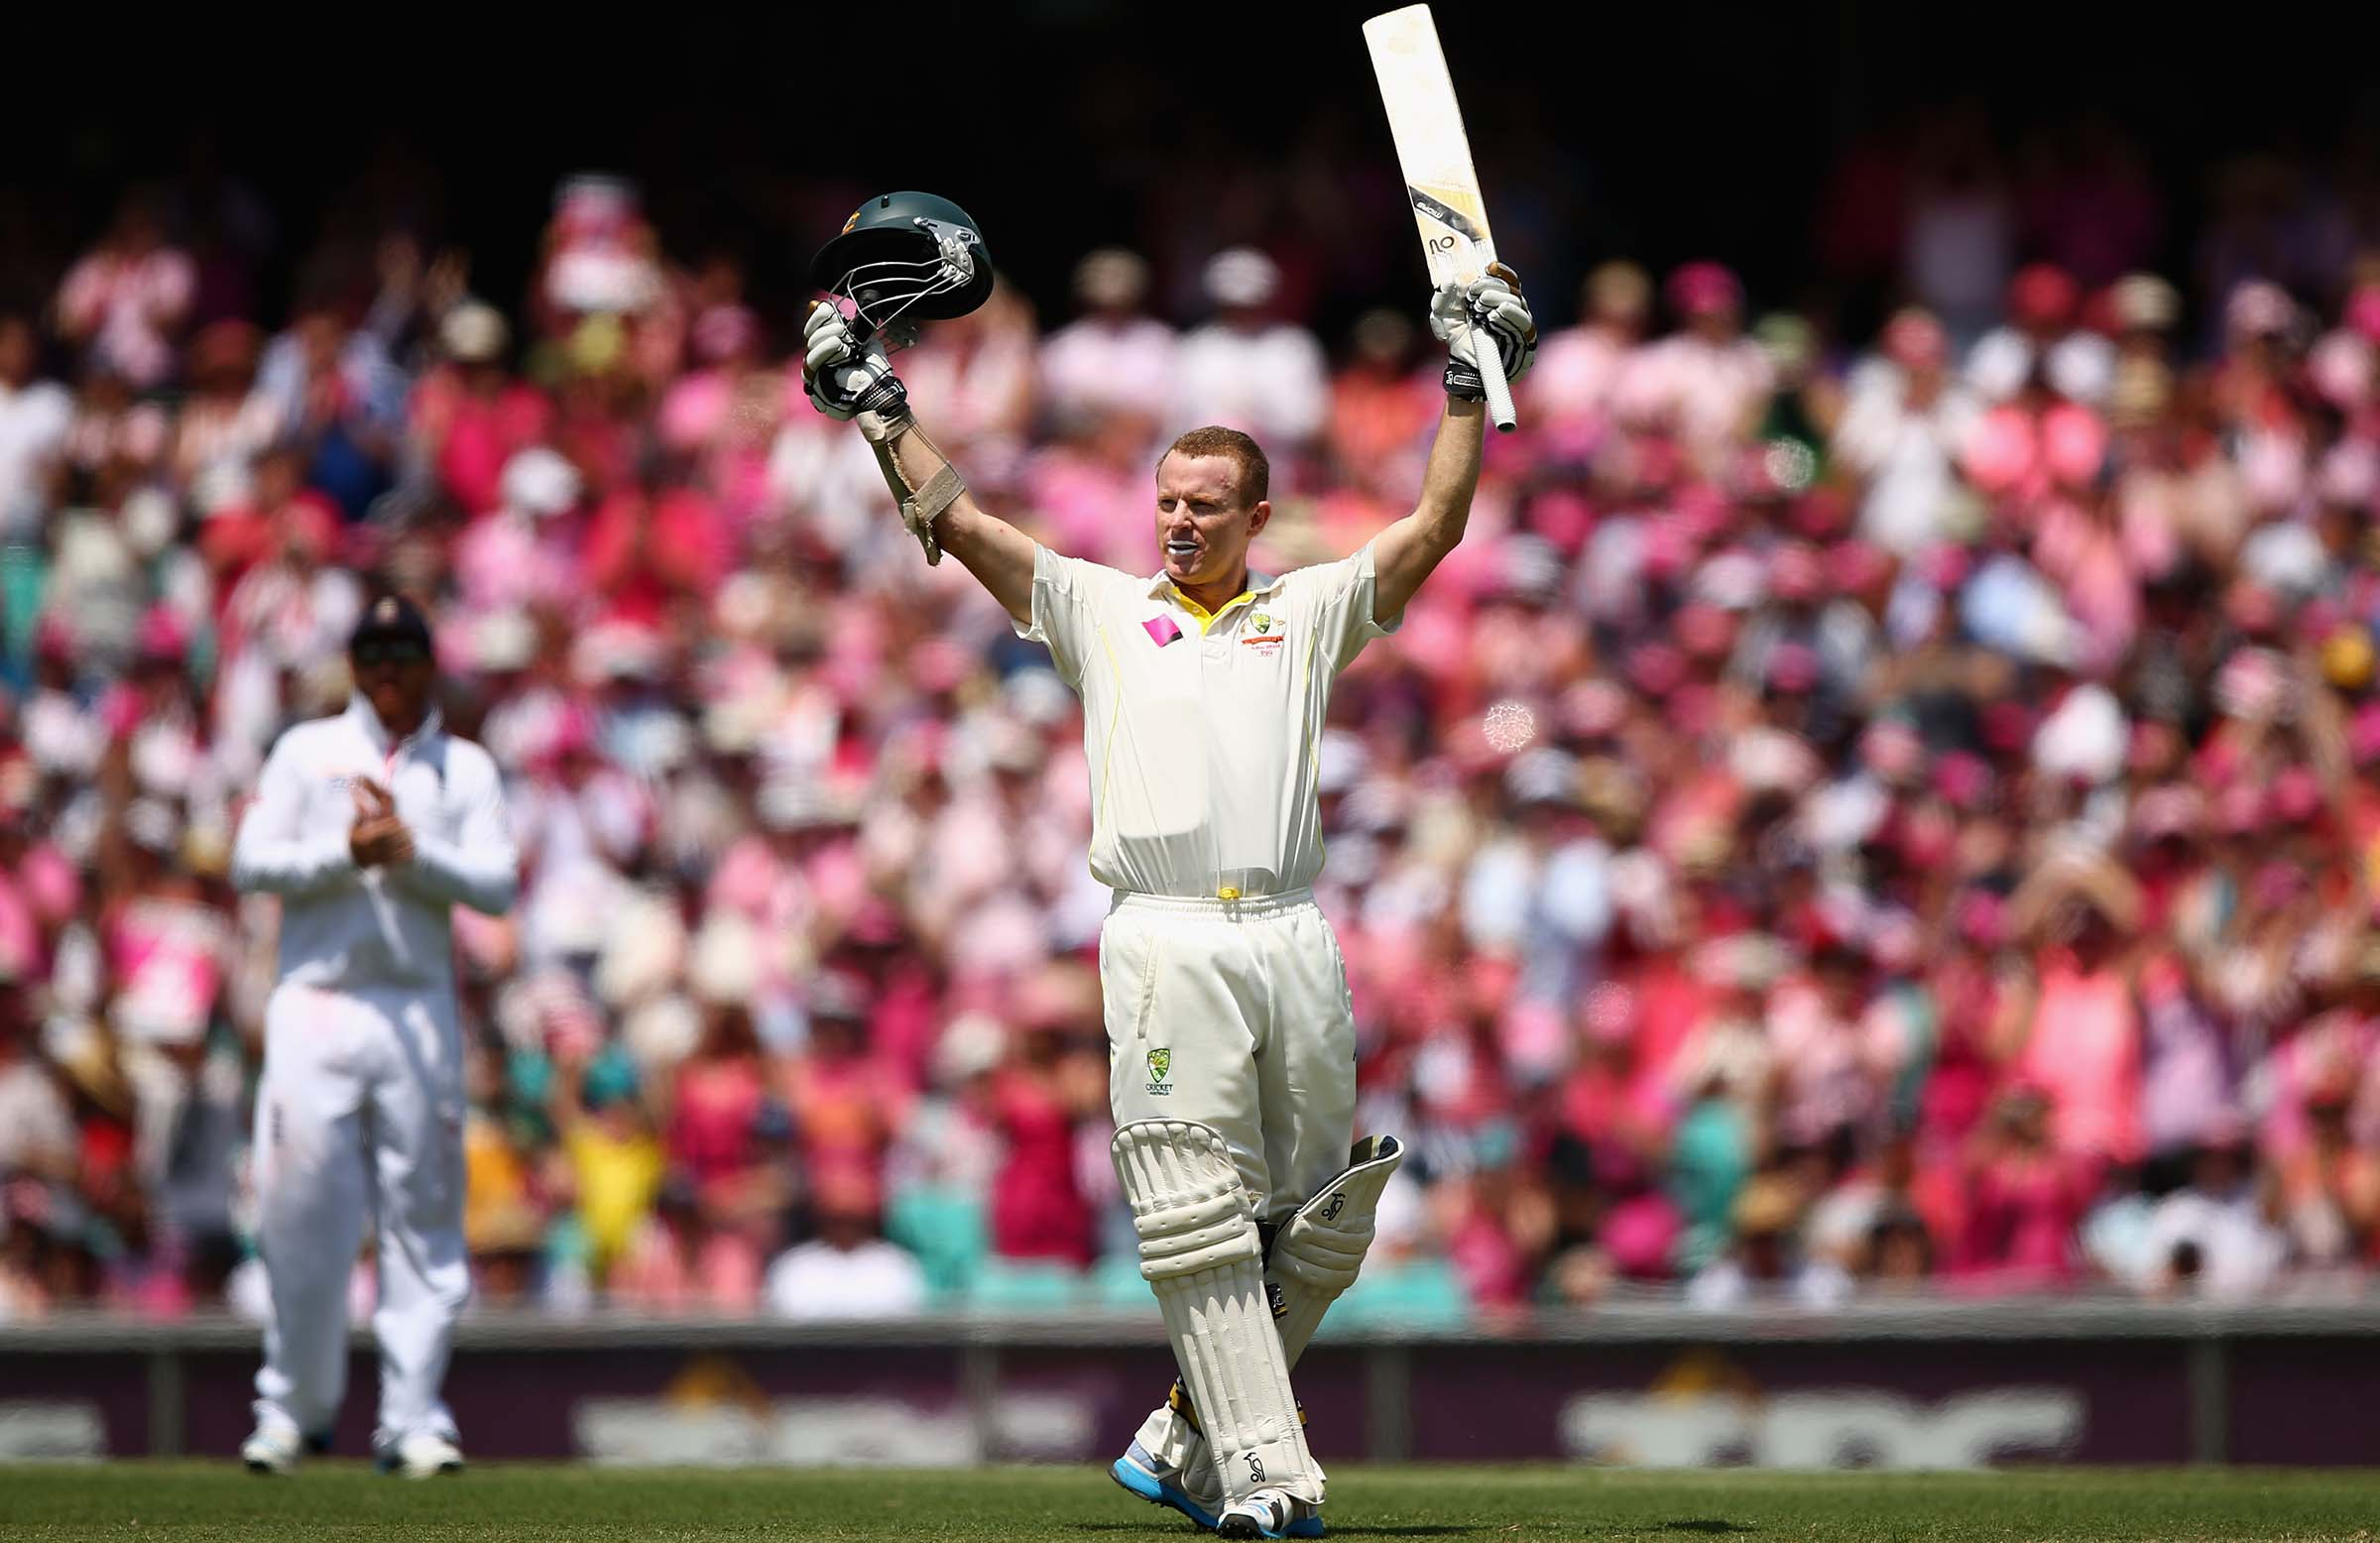 Rogers celebrates an Ashes hundred at the SCG, 2014 // Getty